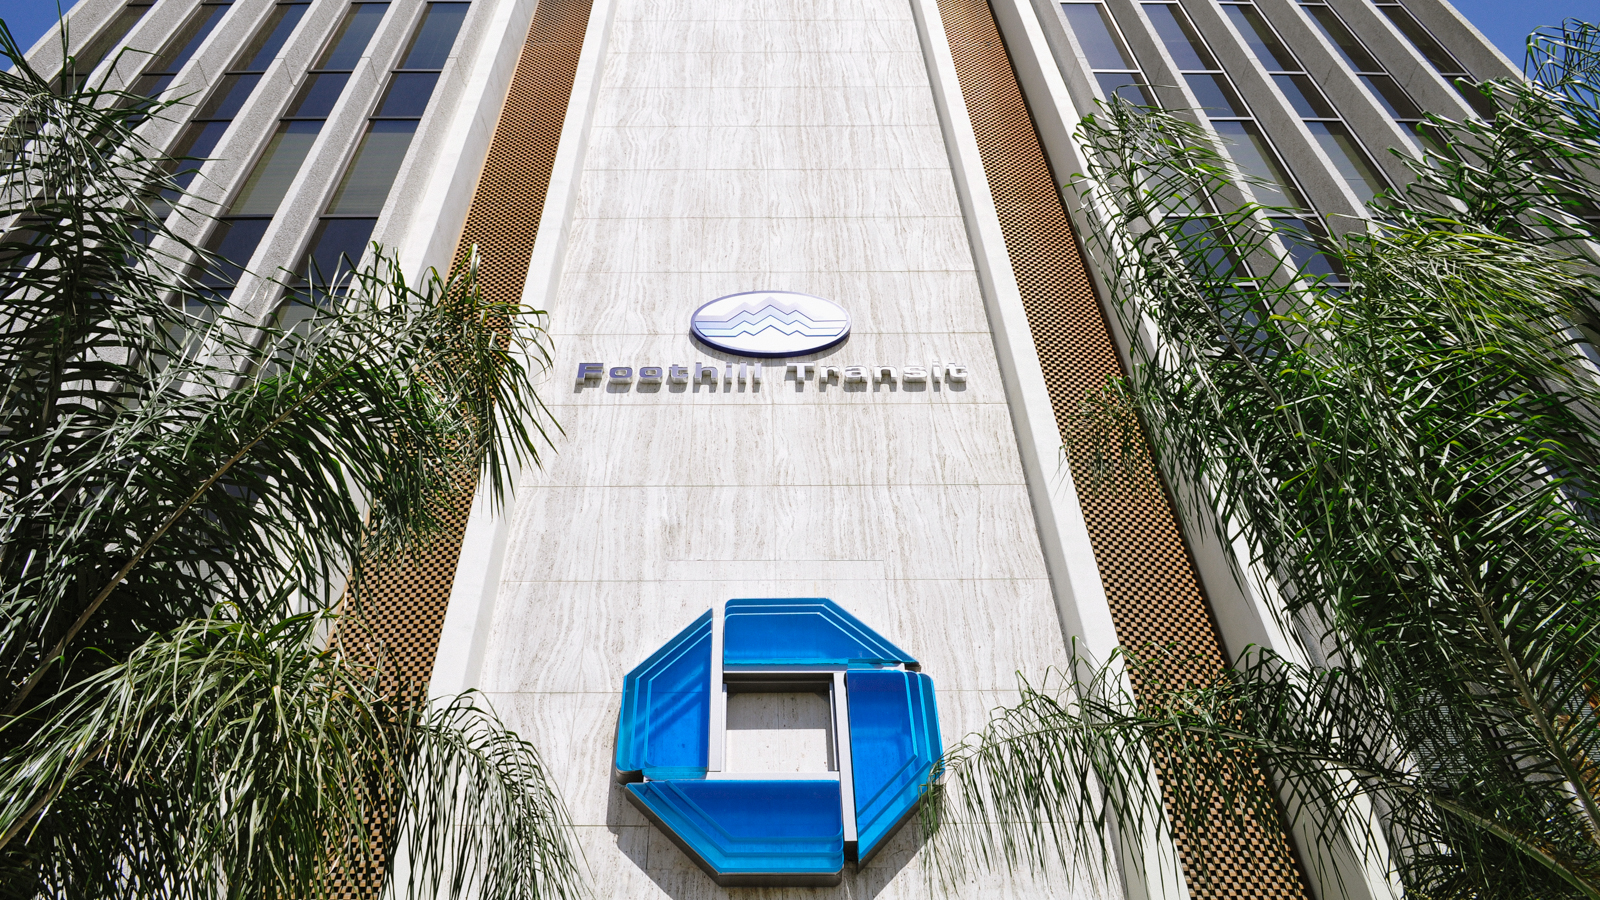 Foothill Transit Headquarters & Chase Bank